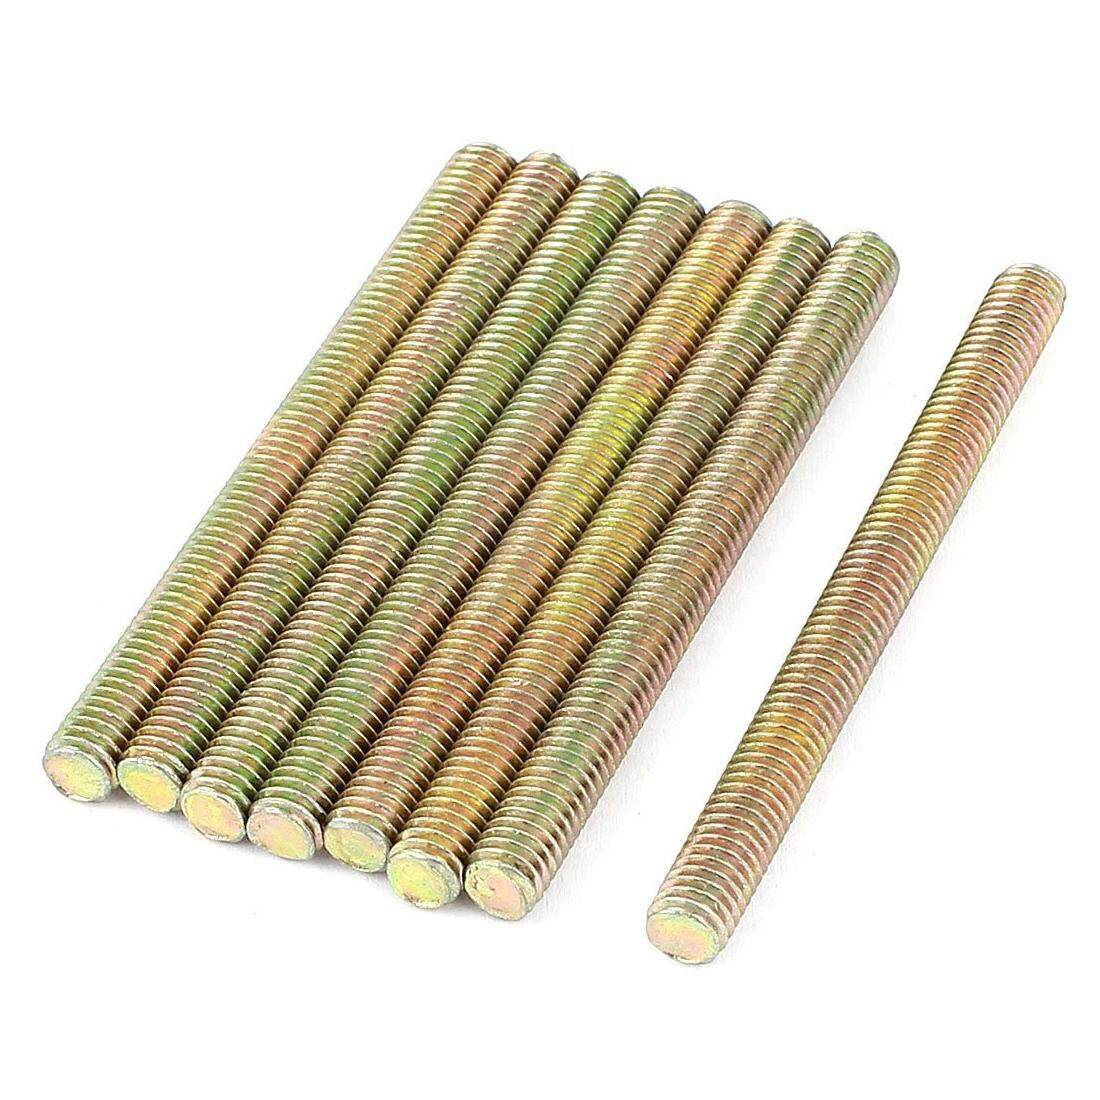 1 mm pitch m6 x 70mm male threaded rod bar bronze tone 8 pcs 1287 624247221 5621d36b5c20391a56fdca1cca8d9db6